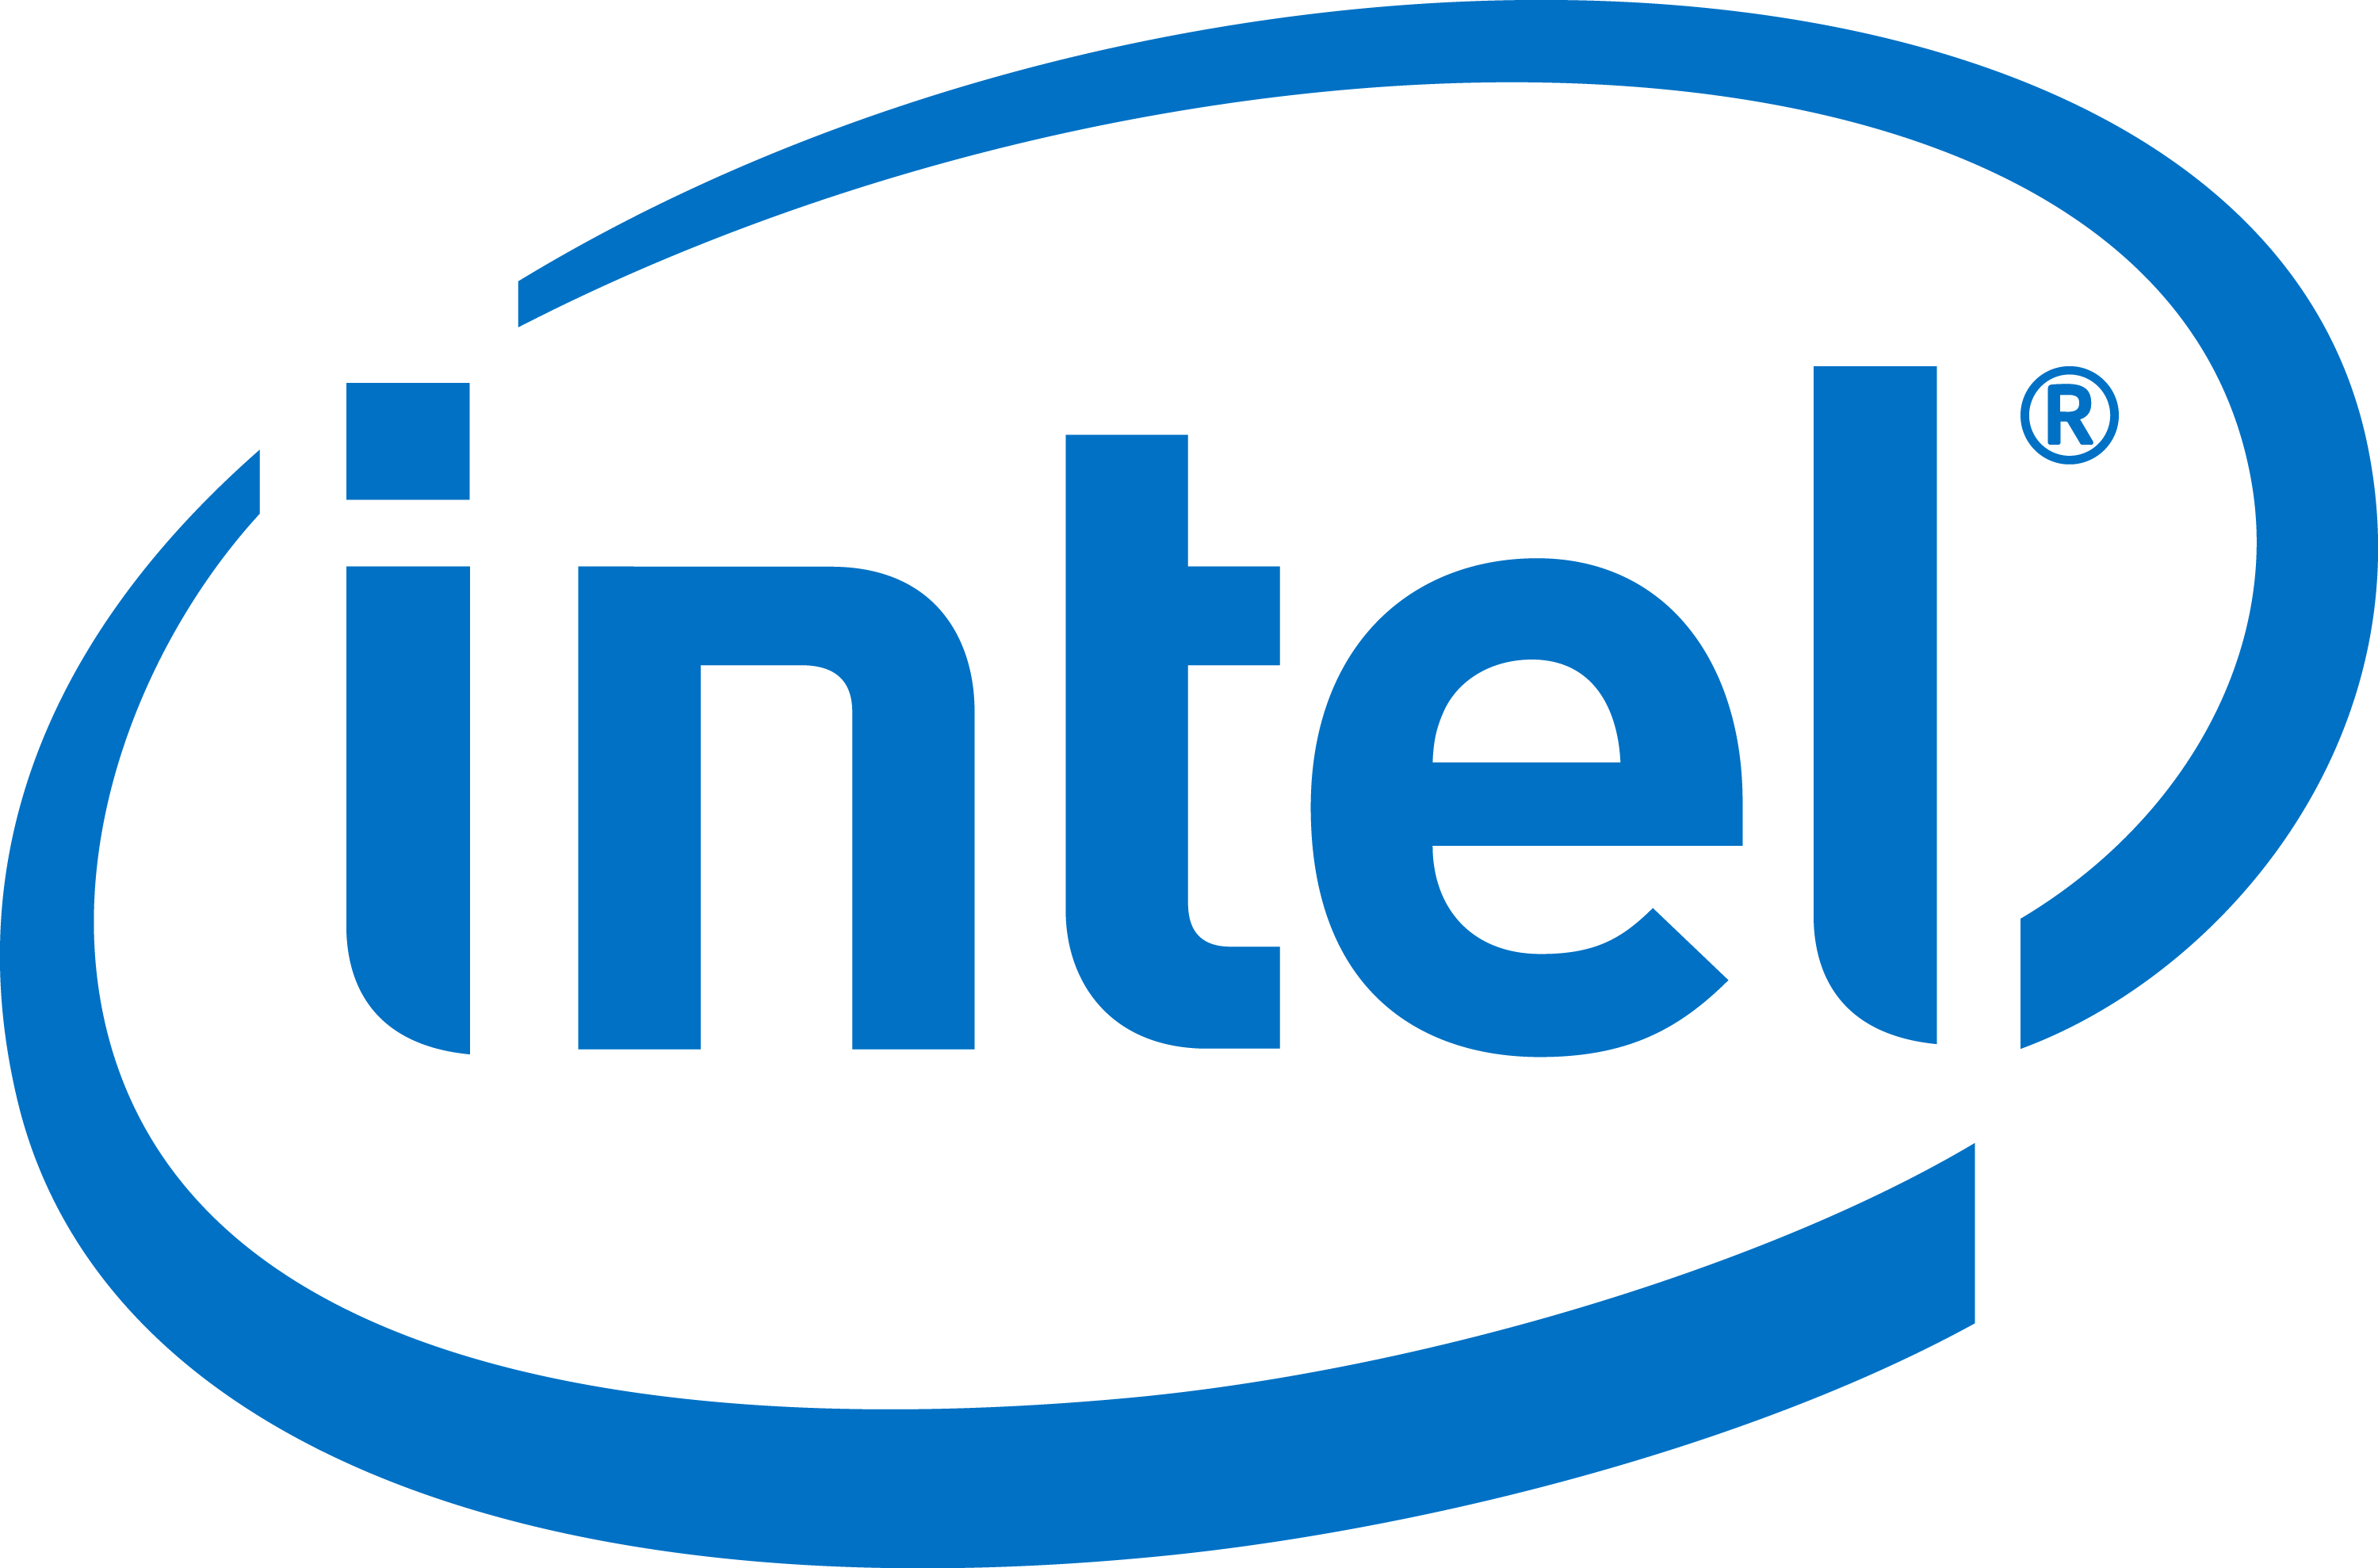 Go to Intel